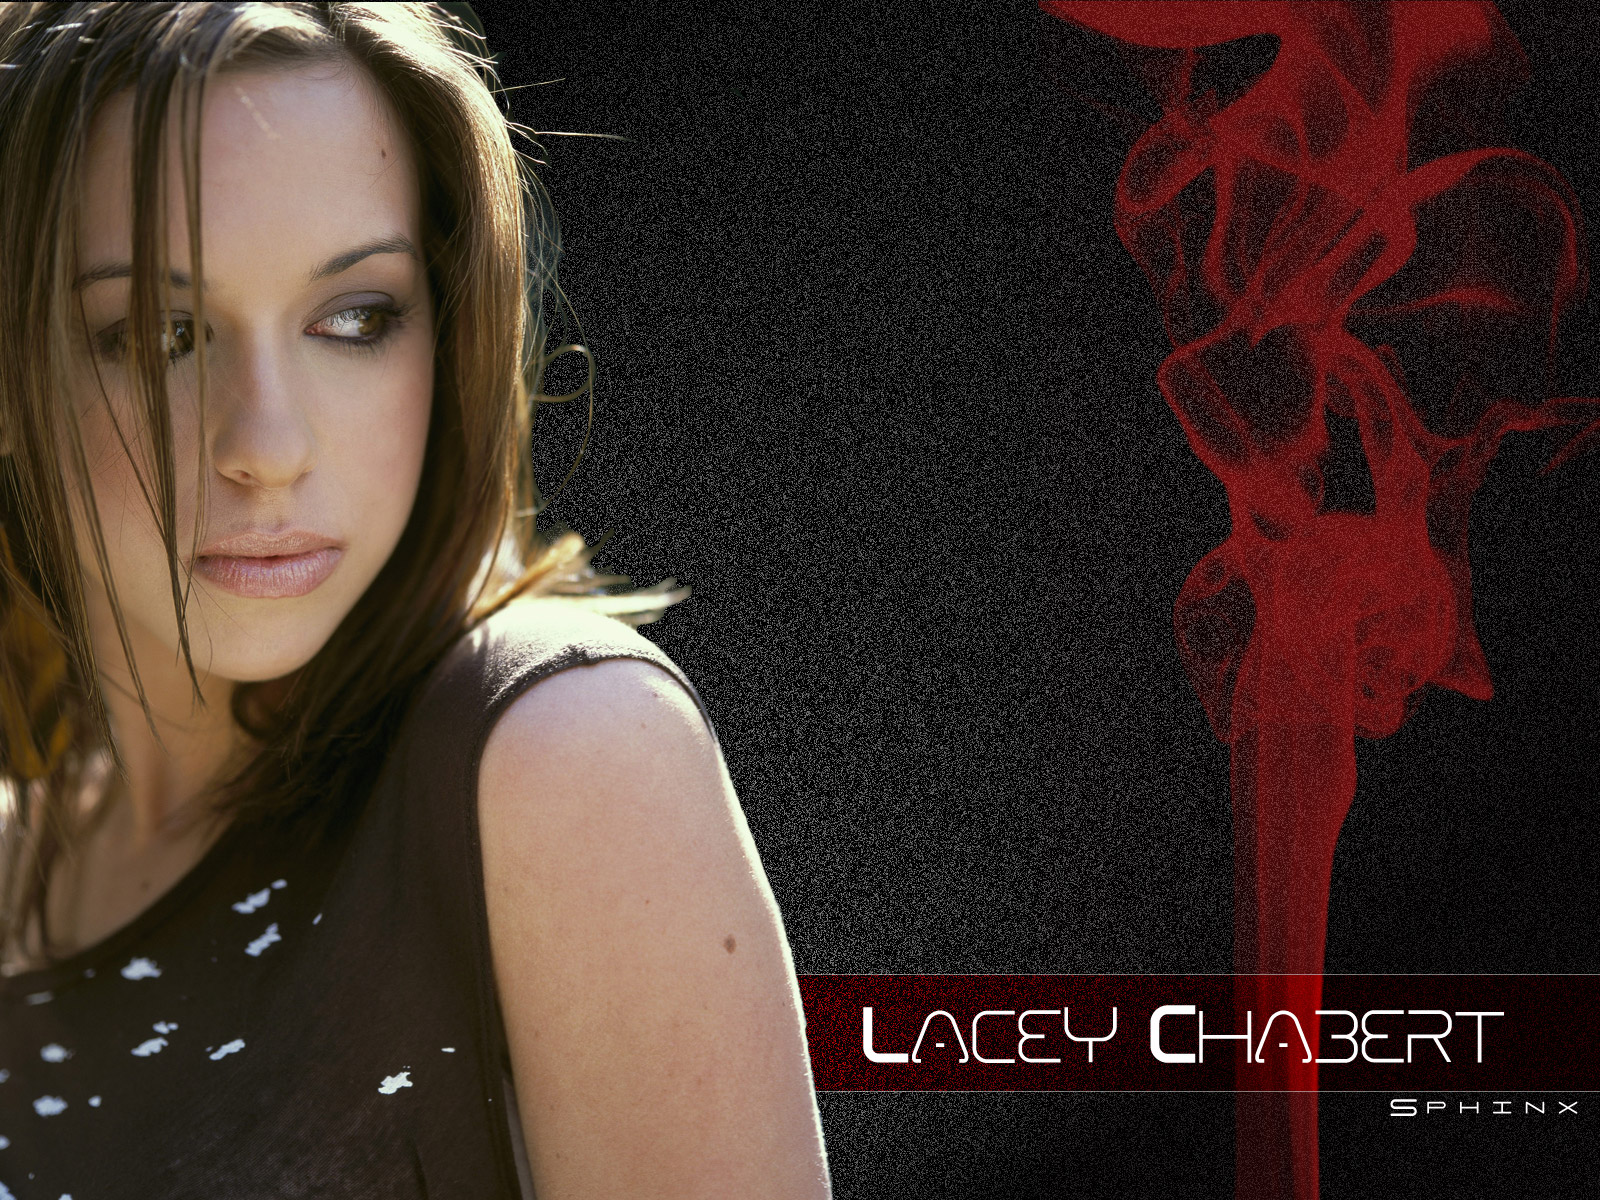 Lacey Chabert Wallpaper Entertainment Wallpaper,